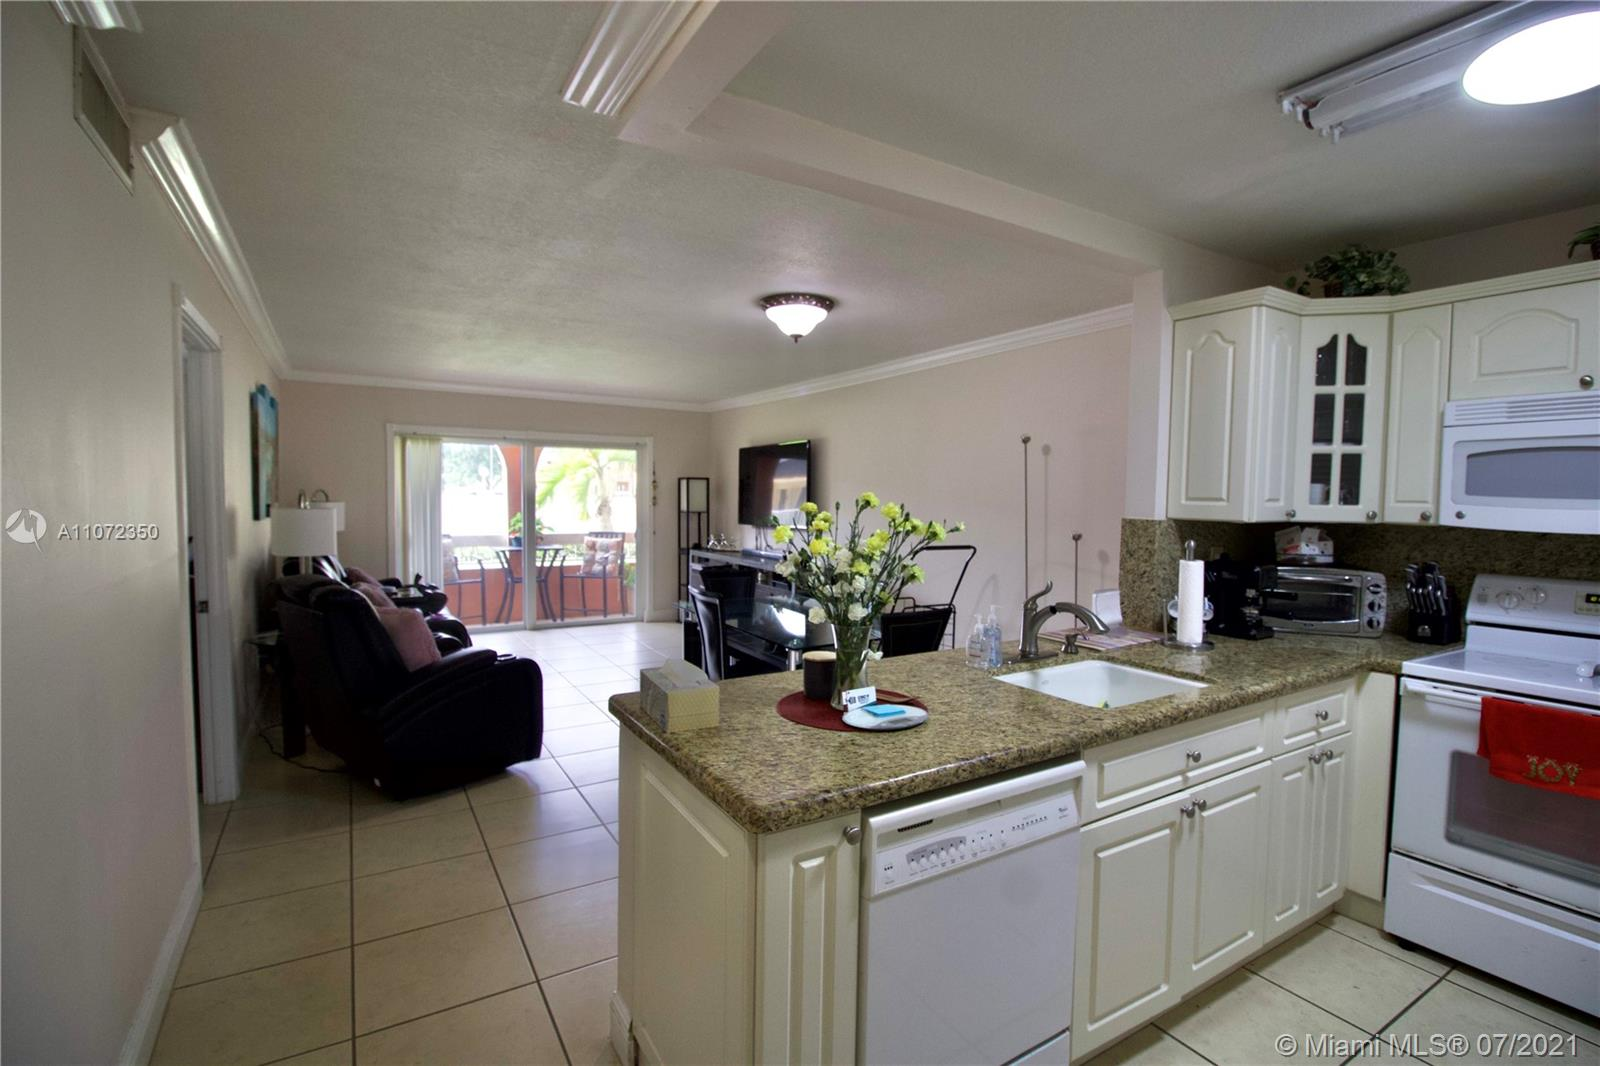 Tenant moves out end of September. Ground floor unit with interior garden community area and a patio with view of the pool. Immediately off the Palmetto expressway, near to US 1, next to Dadeland Mall, Downtown Dadeland with great restaurants, bars and shopping. Unit is extremely well taken care of and clean. IMPACT WINDOWS & SHUTTERS, lots of natural light, storage space and open kitchen. Community is meticulously maintained, with multiple pools (including an adults only pool) and tons of amenities. ASSOCIATION HAS RESERVES